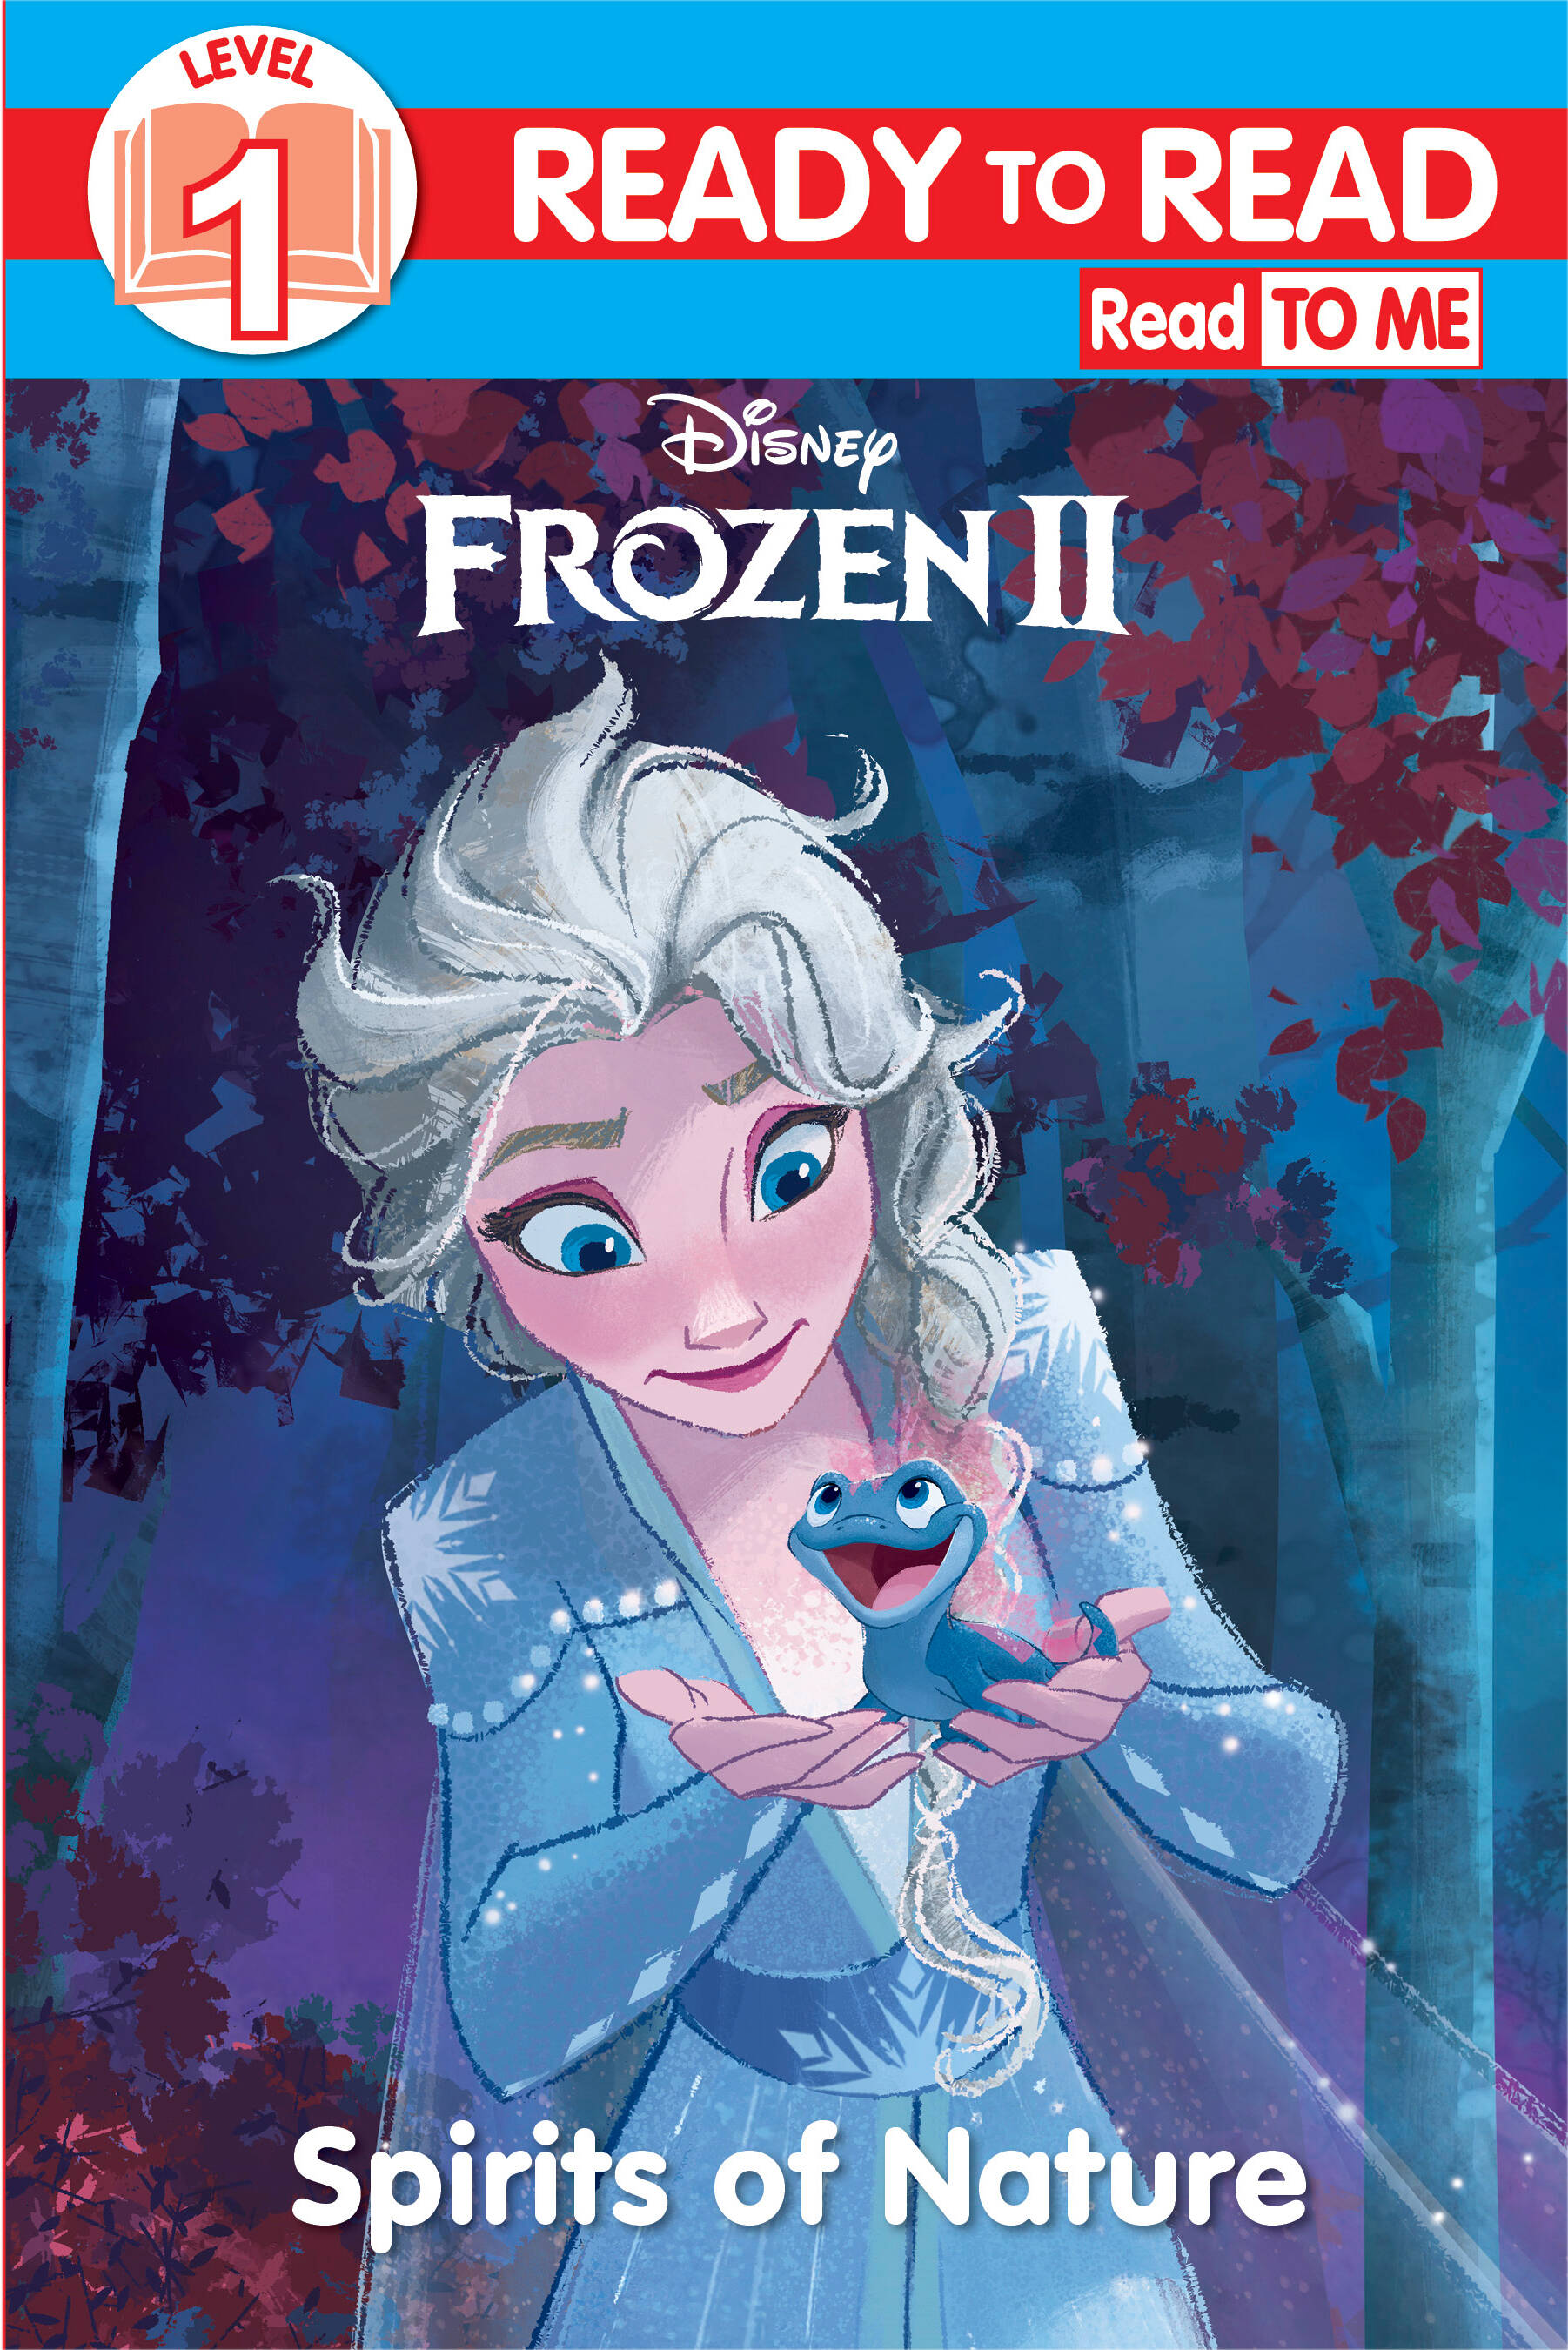 Disney Frozen 2 - RTR Level 1 - Spirits Of Nature